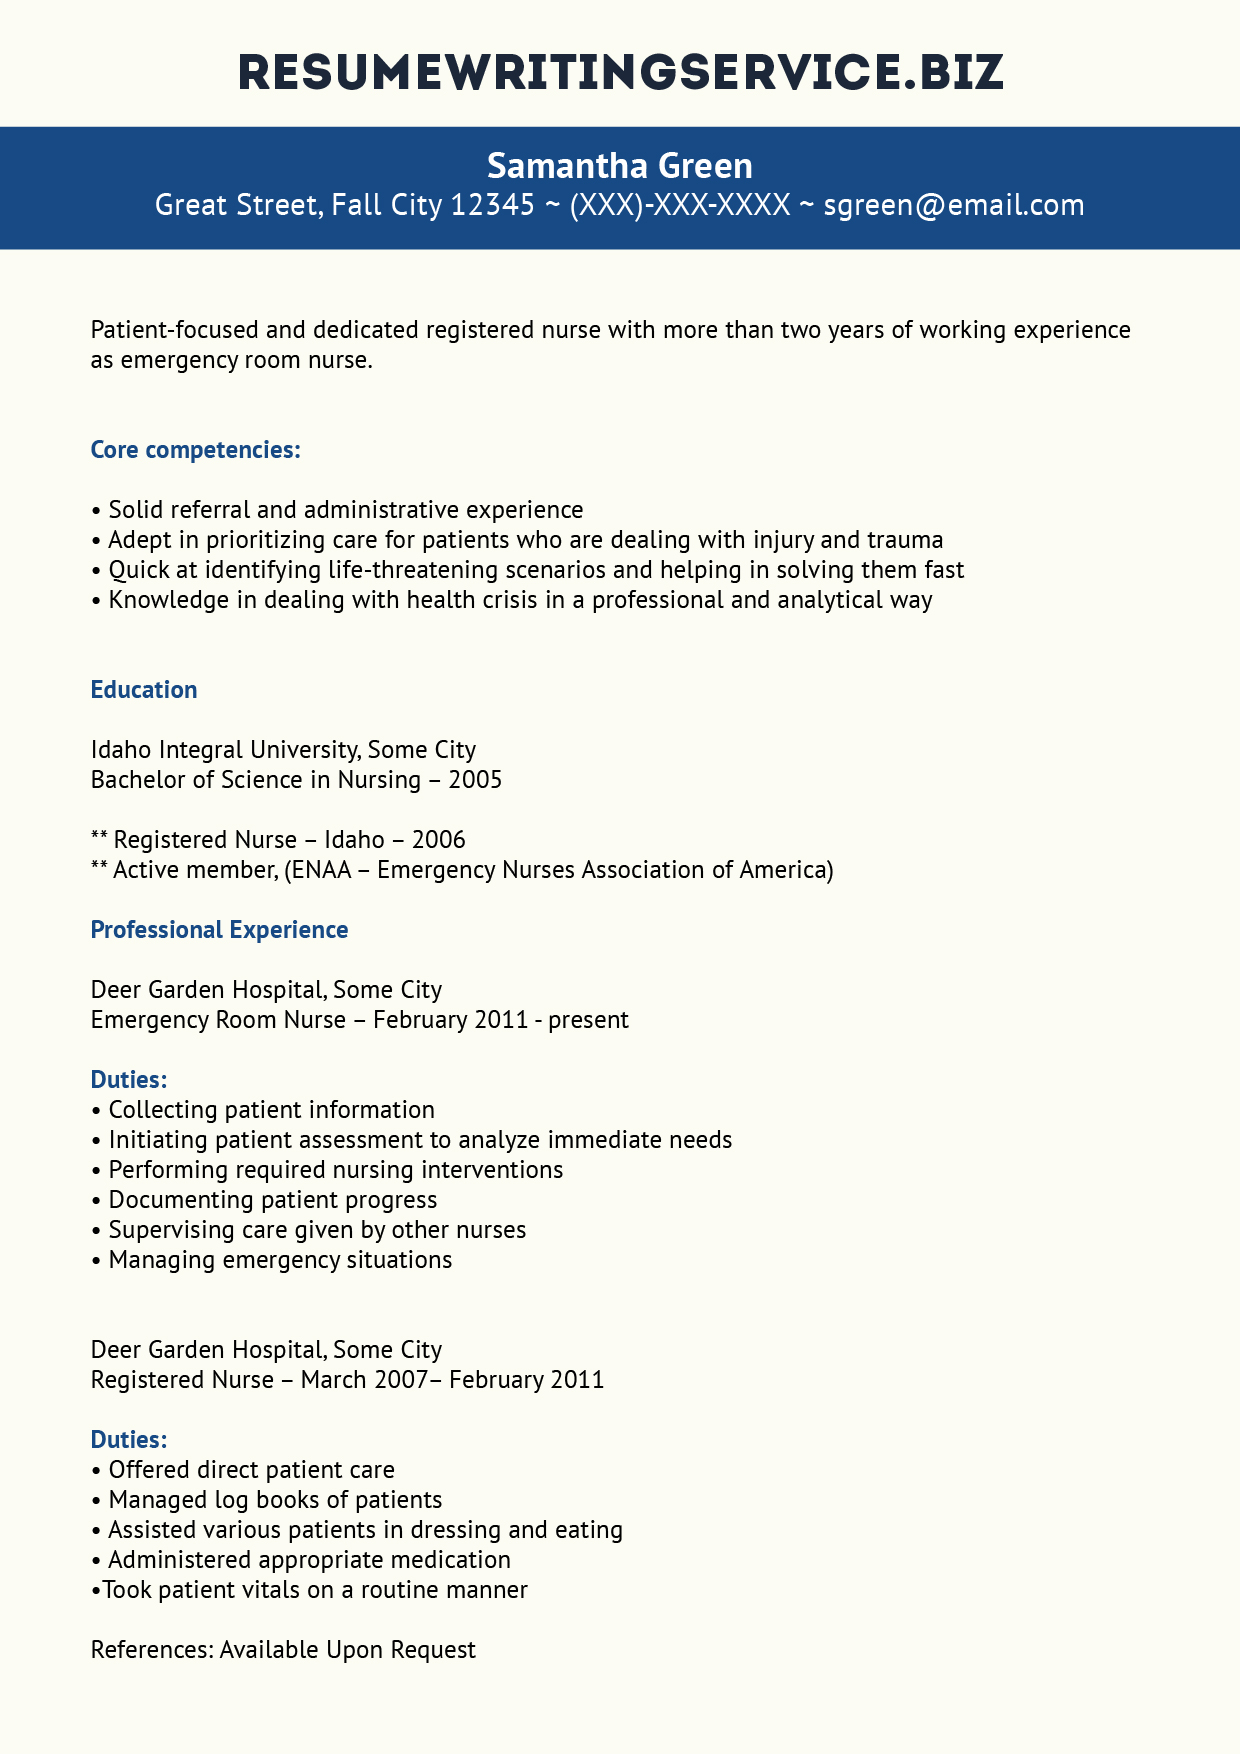 Cardiac Nurse Resume Sample Professional Er Nurse Resume Example Resume Writing Service